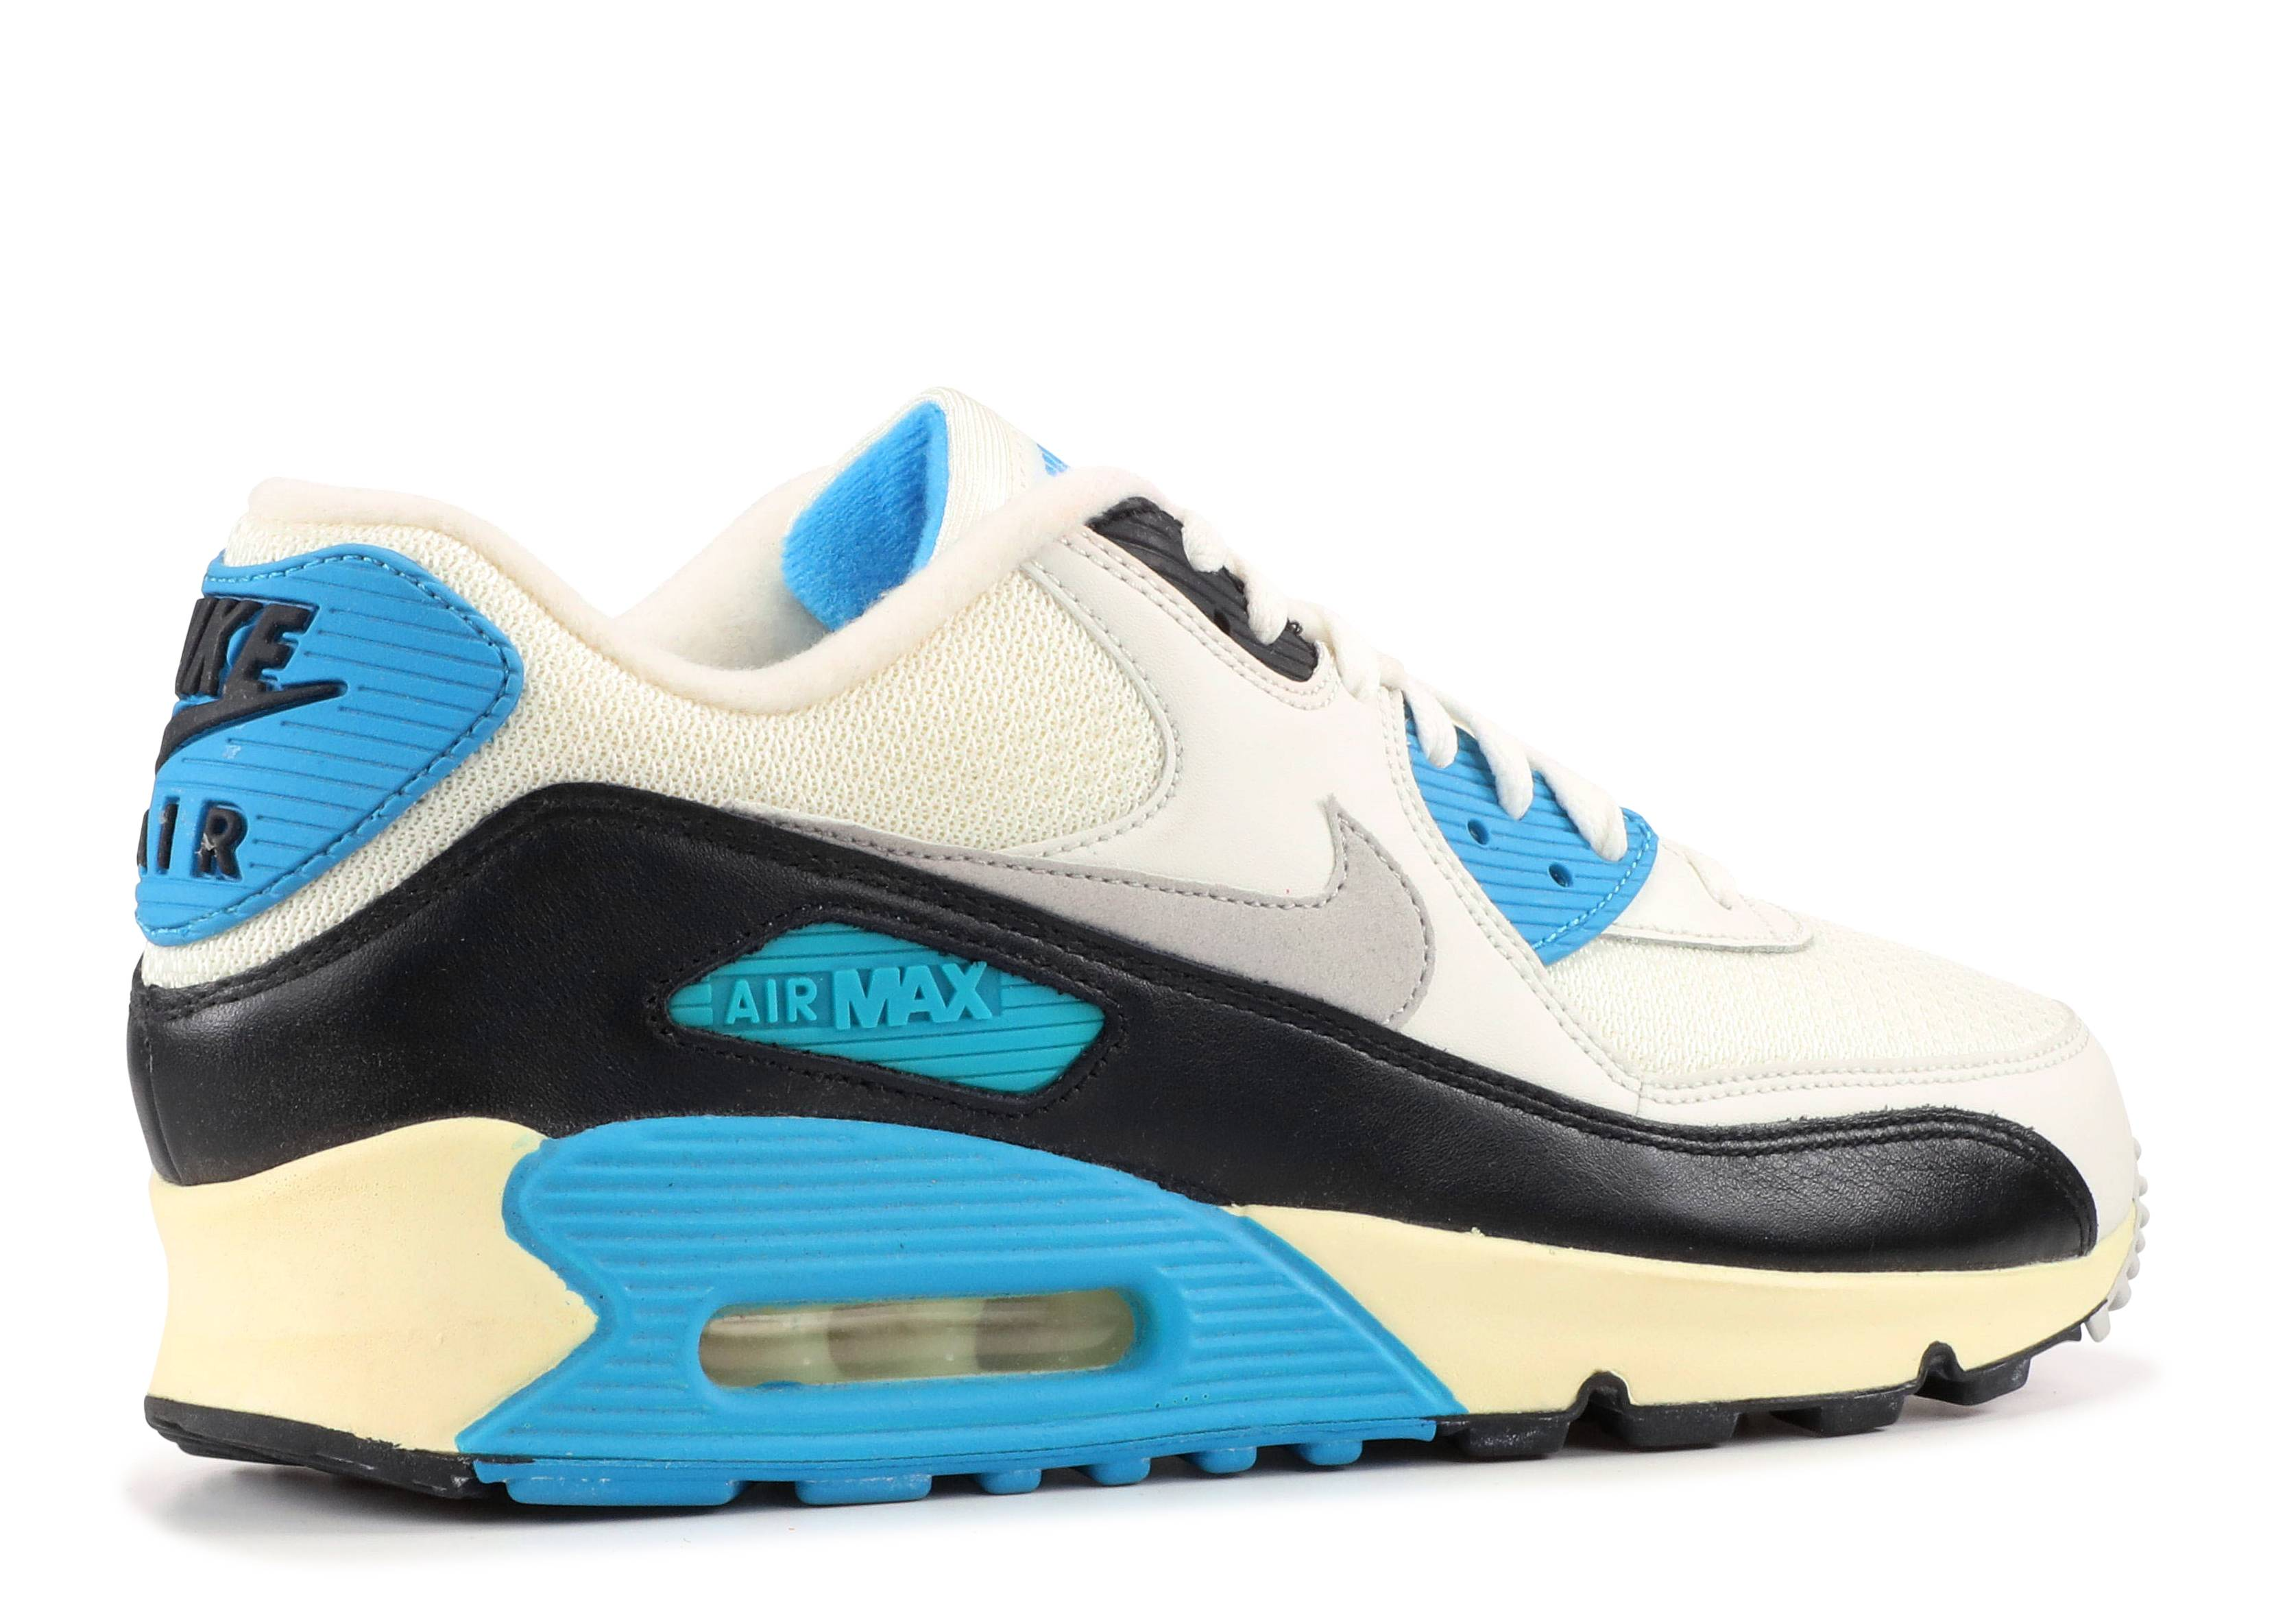 Nike Air Max 90 Laser Blue Retro | Kicks Box